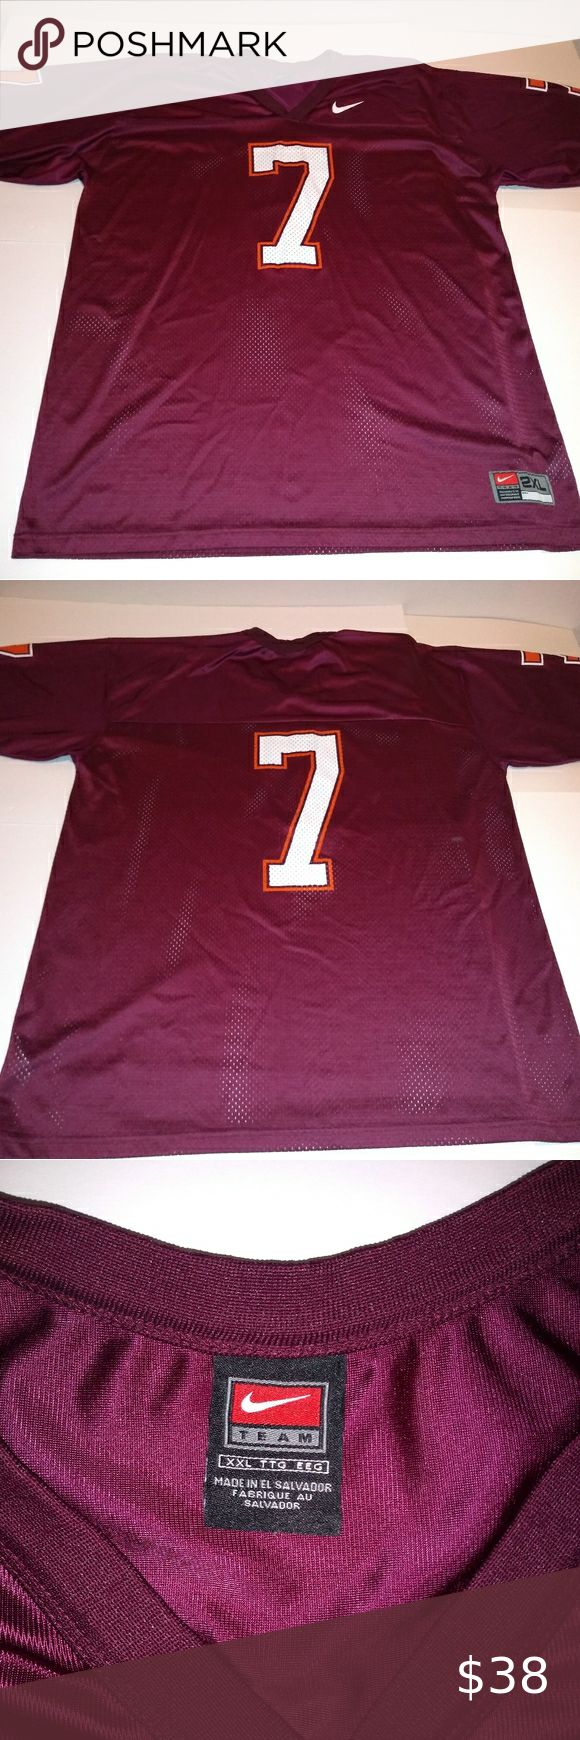 Nike Michael Vick Virginia Tech 2XL You are looking at a